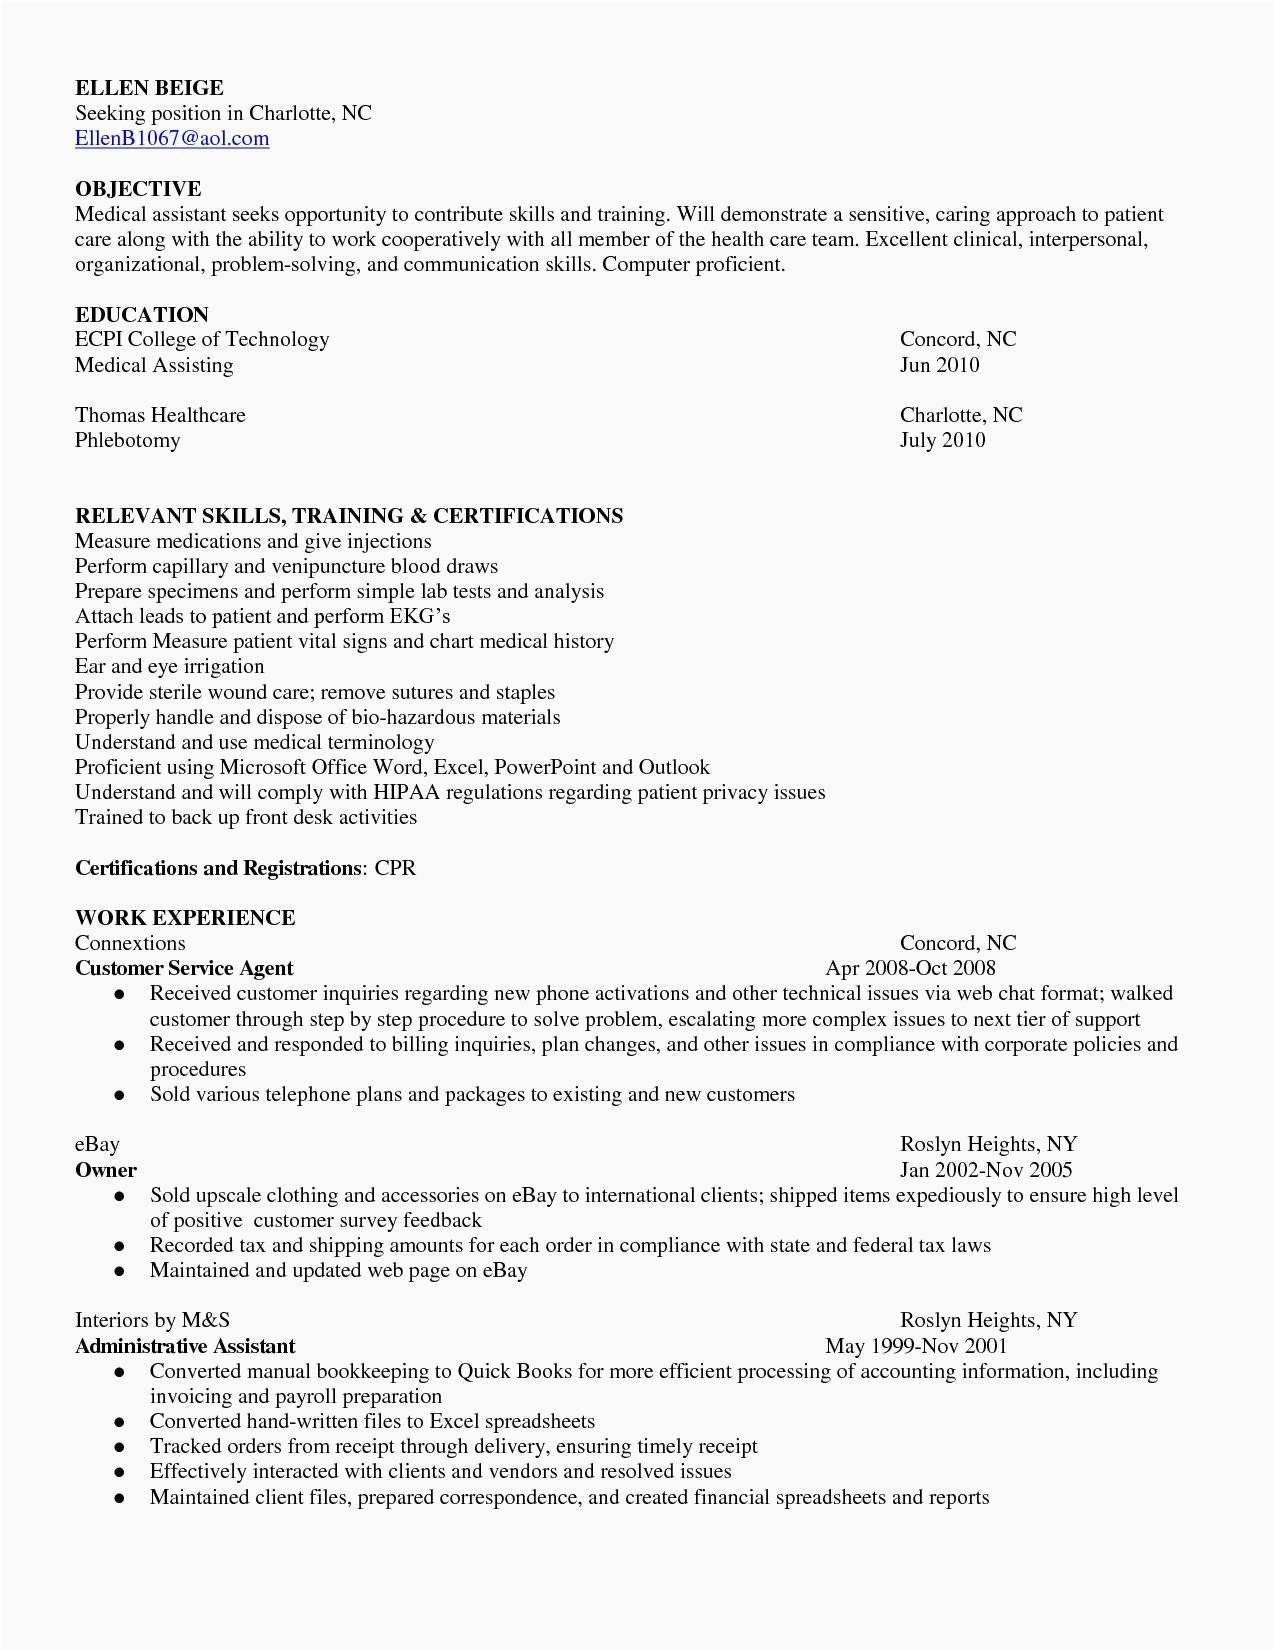 Teaching assistant Resume Sample Fresh Resume Samples